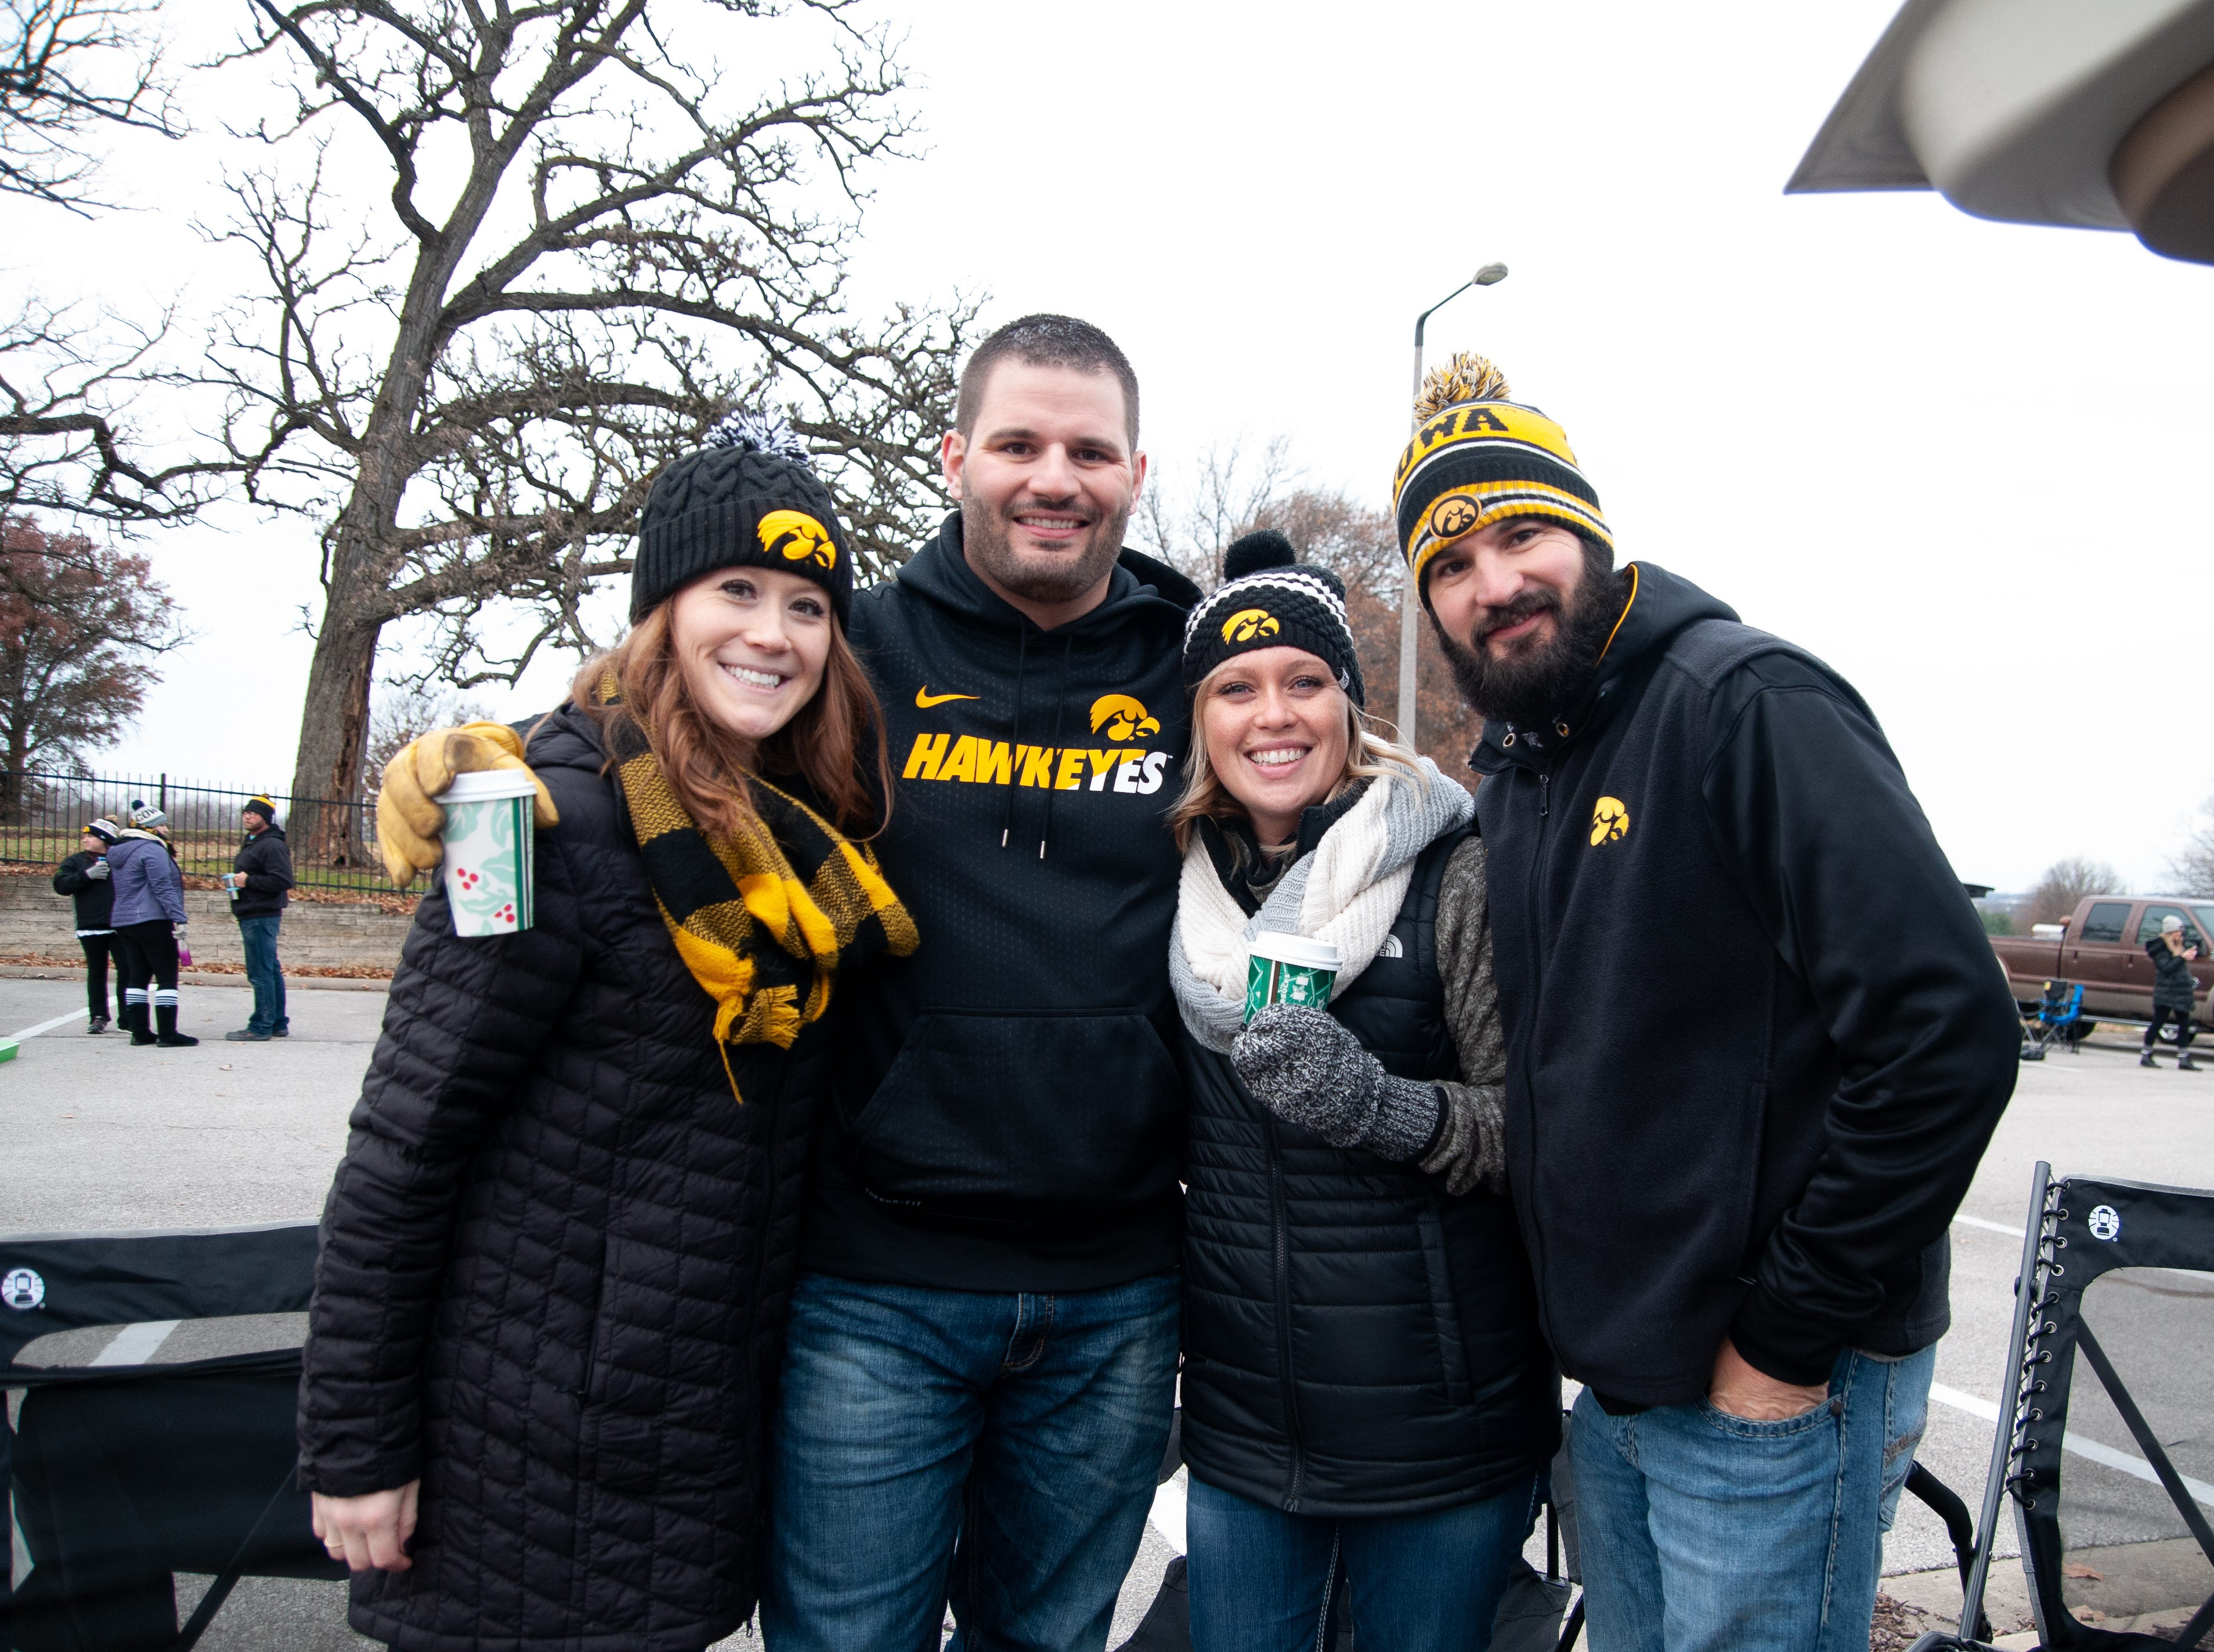 Alexandra Leblanc, Ted Leblanc, Amanda and Kenney Drikx, of Central Iowa, Friday, Nov. 23, 2018, while tailgating before the Iowa game against Nebraska in Iowa City.